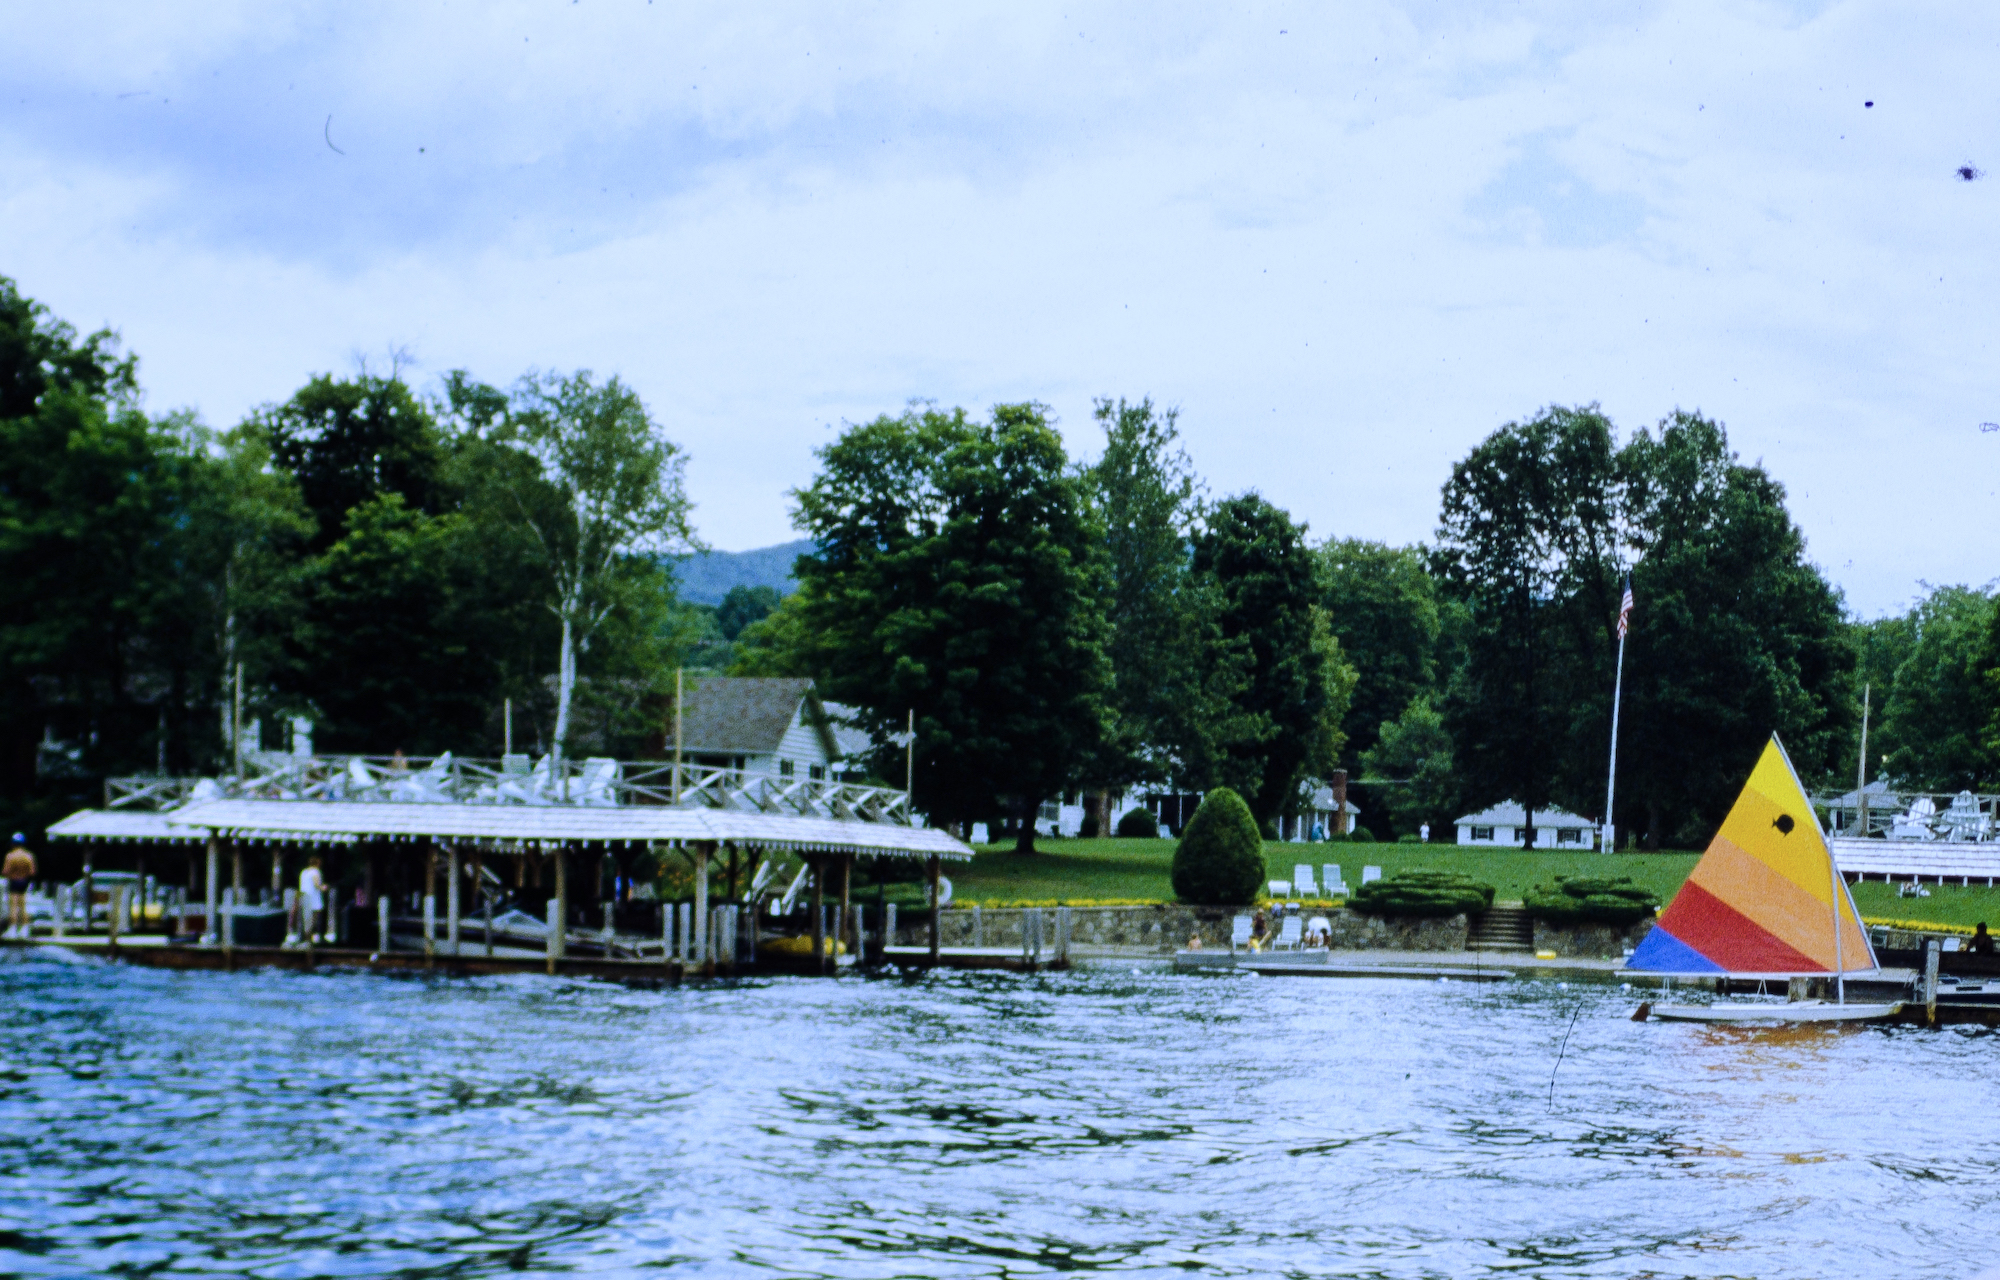 Takundewide beach from the lake in 1988